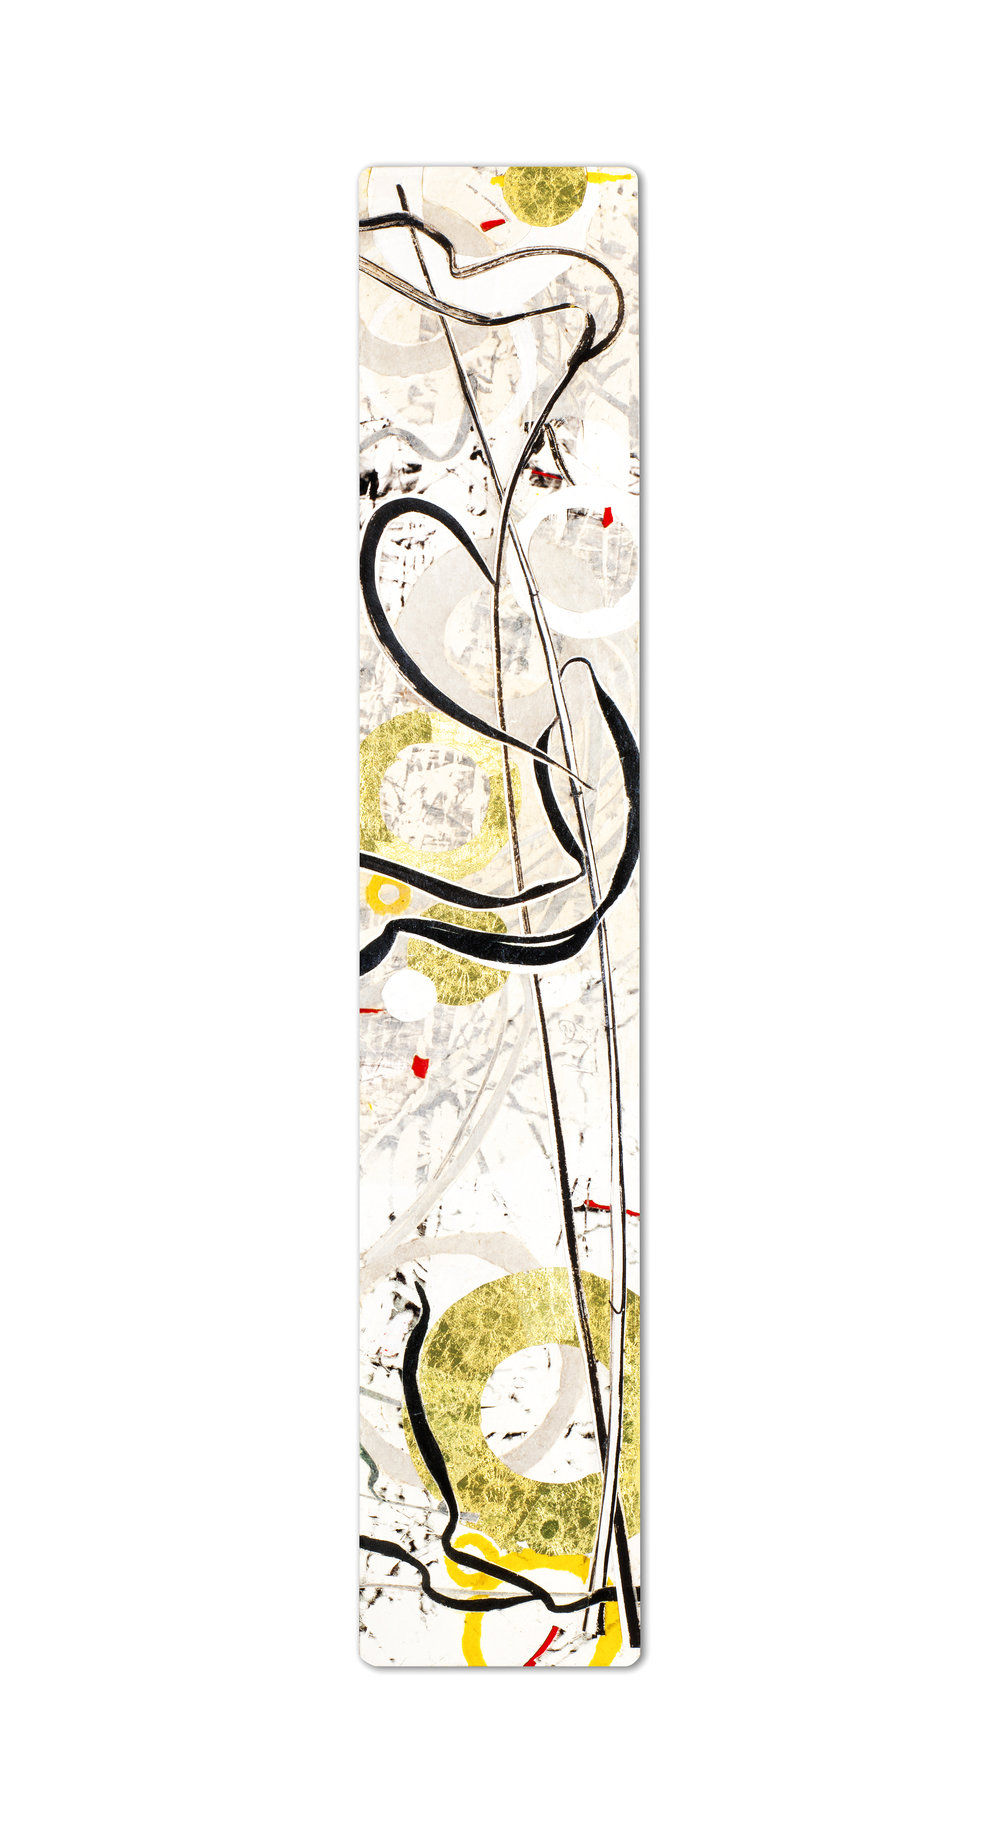 Grasses Renewed_54x10x3_Mixed Media_2011_panel2.jpg